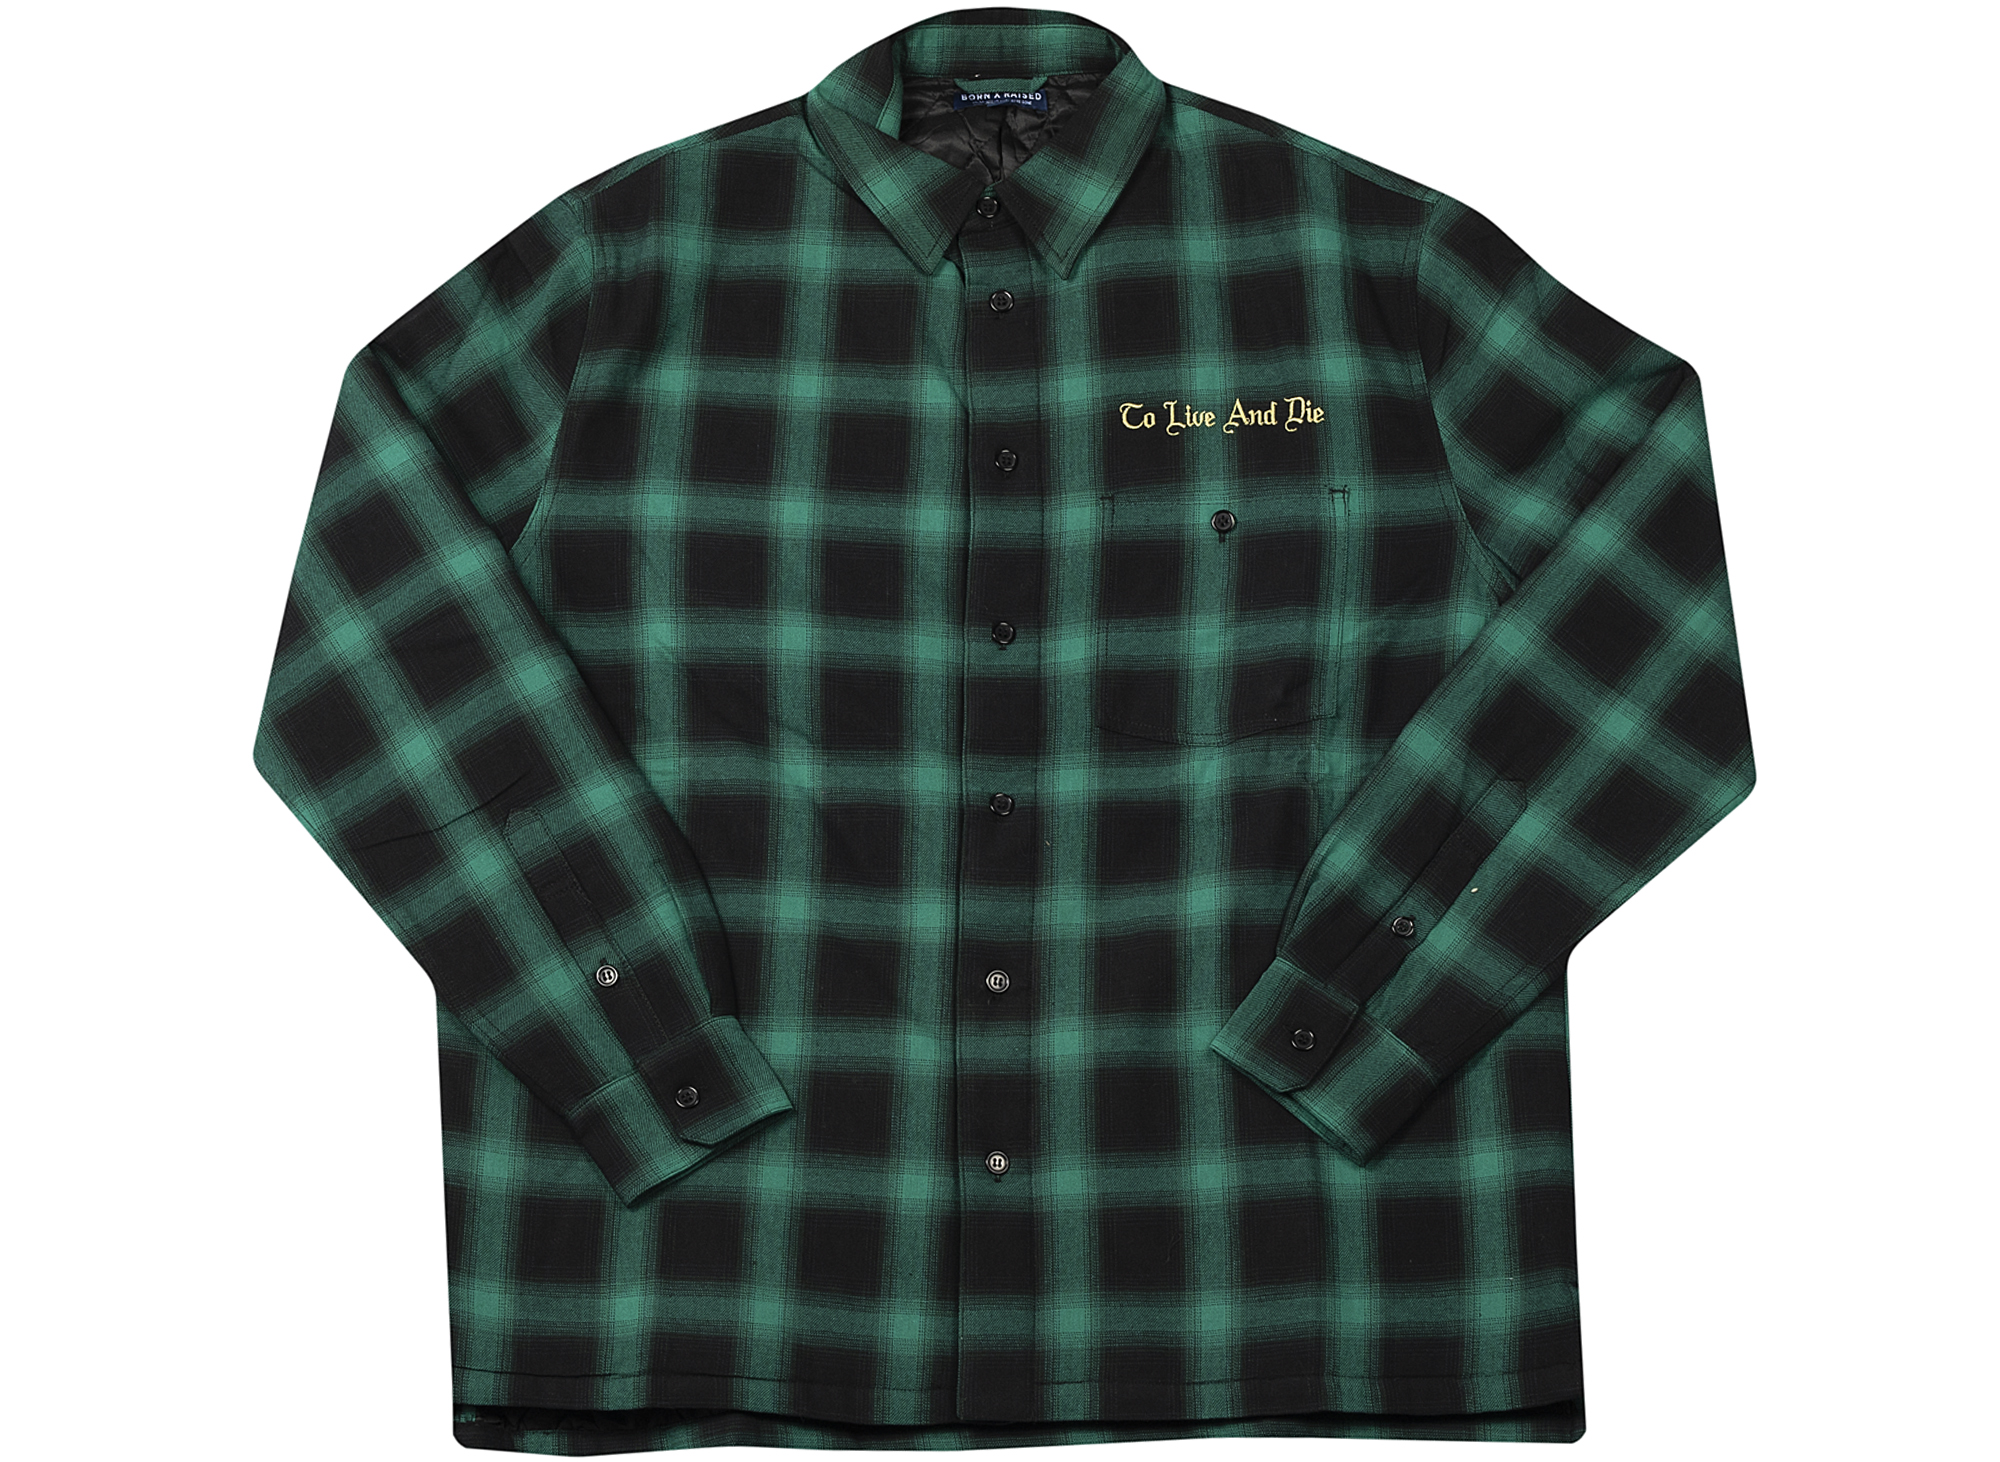 Born x Raised To Live and Die Flannel